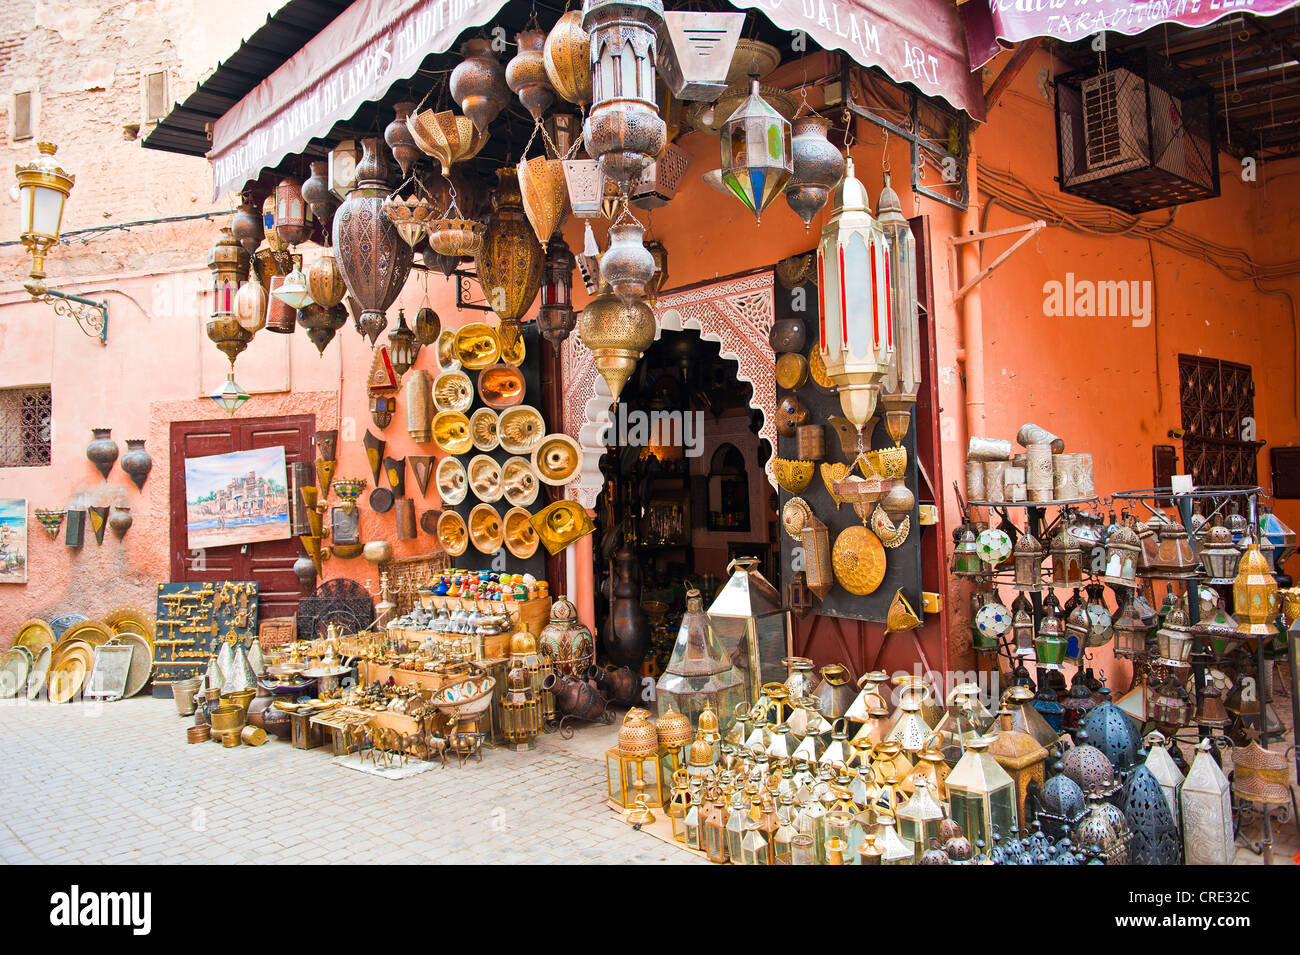 A trader has displayed lanterns, lamps and sinks made of brass, copper and other metal outside his shop for sale, - Stock Image